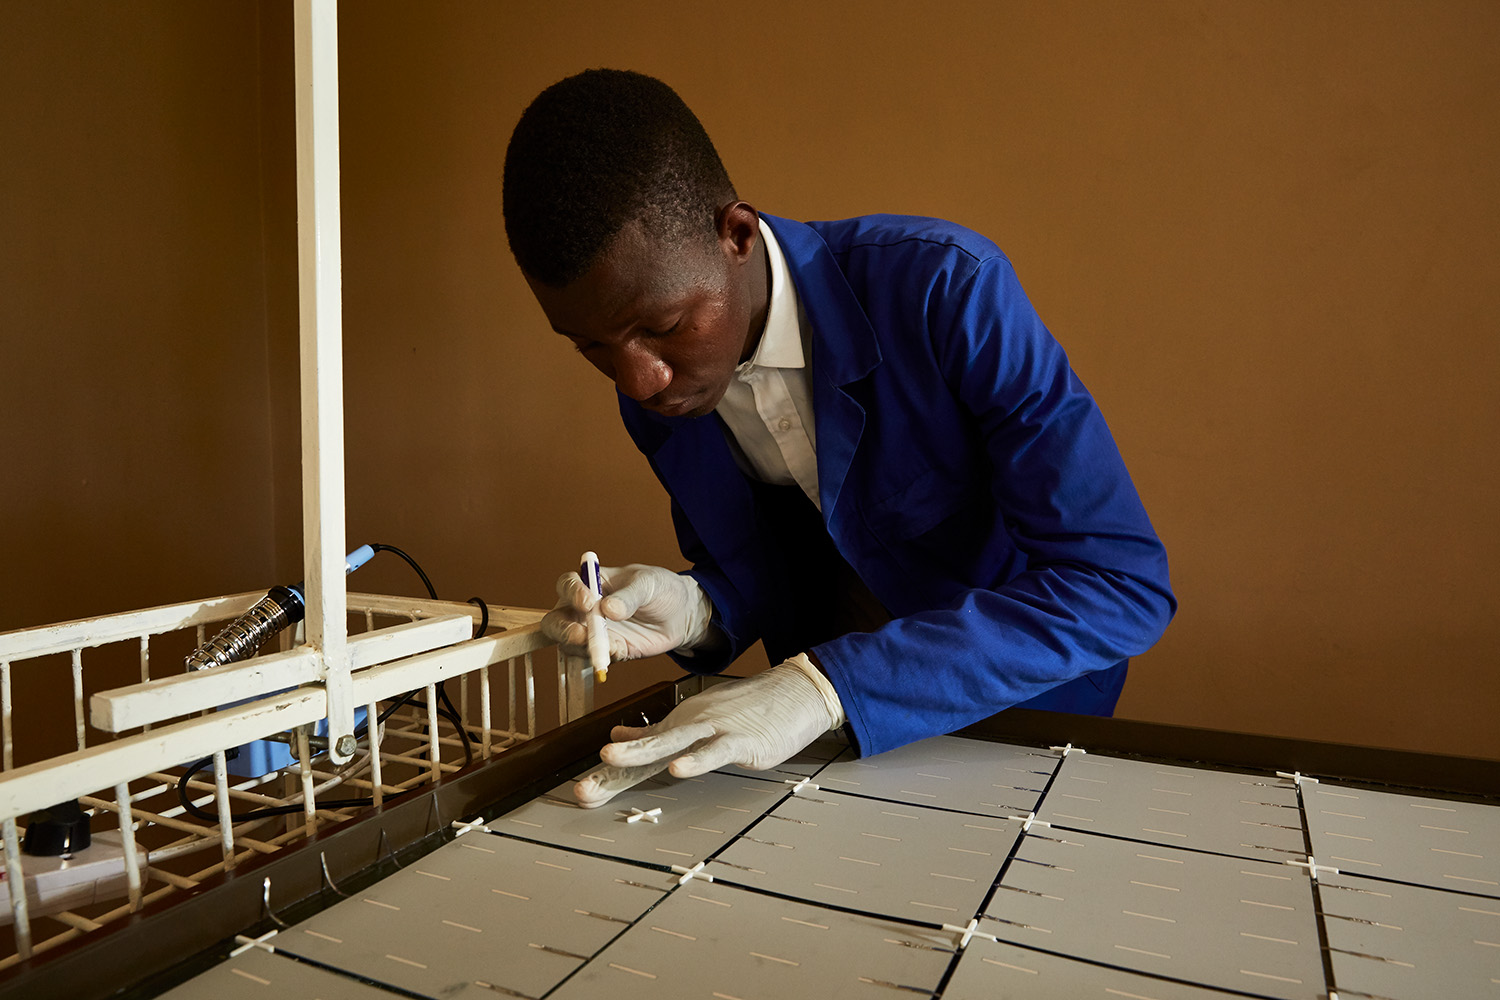 Thomas, a student at Green Malata, an entrepreneurial village, carefully solders metal strips to the back of a solar panel, Luchenza, southern Malawi, 2017.  Thomas and his fellow students are part of Green Malata's Renewable Energy course, during which they learn about a range of different green alternatives to on-grid electricity generation.